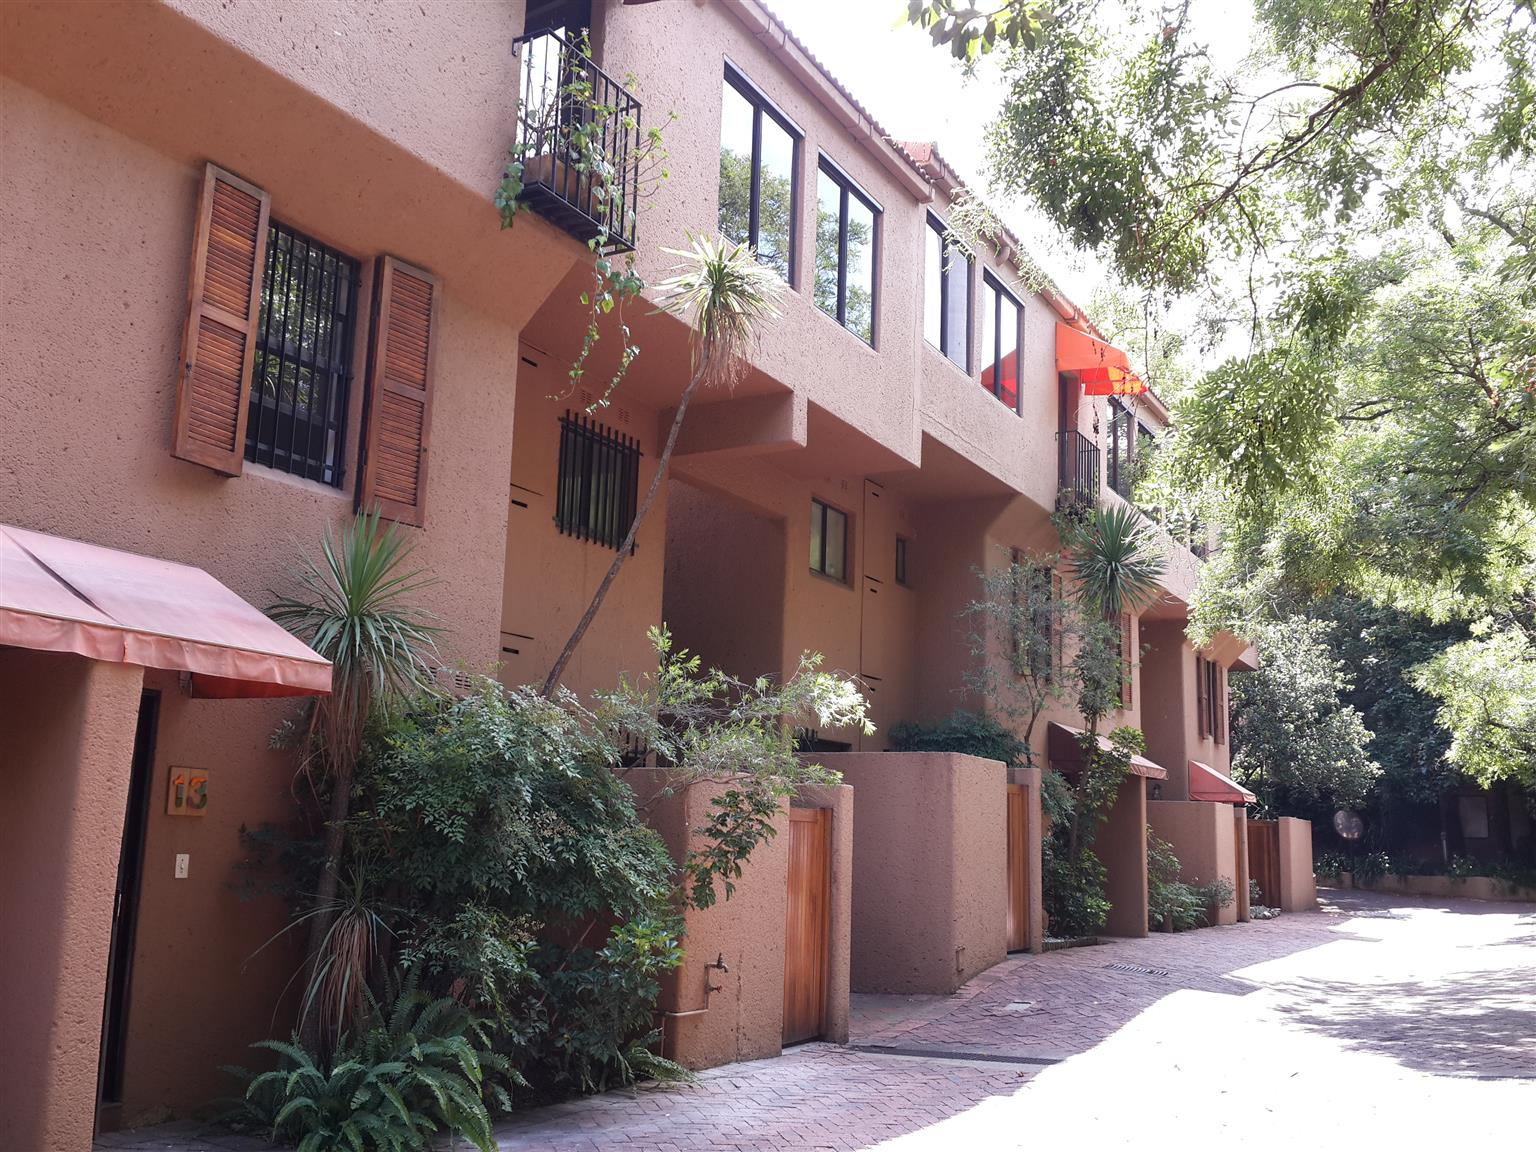 PARKTOWN - Lovely upmarket 3 bedroomed townhouse in secure complex